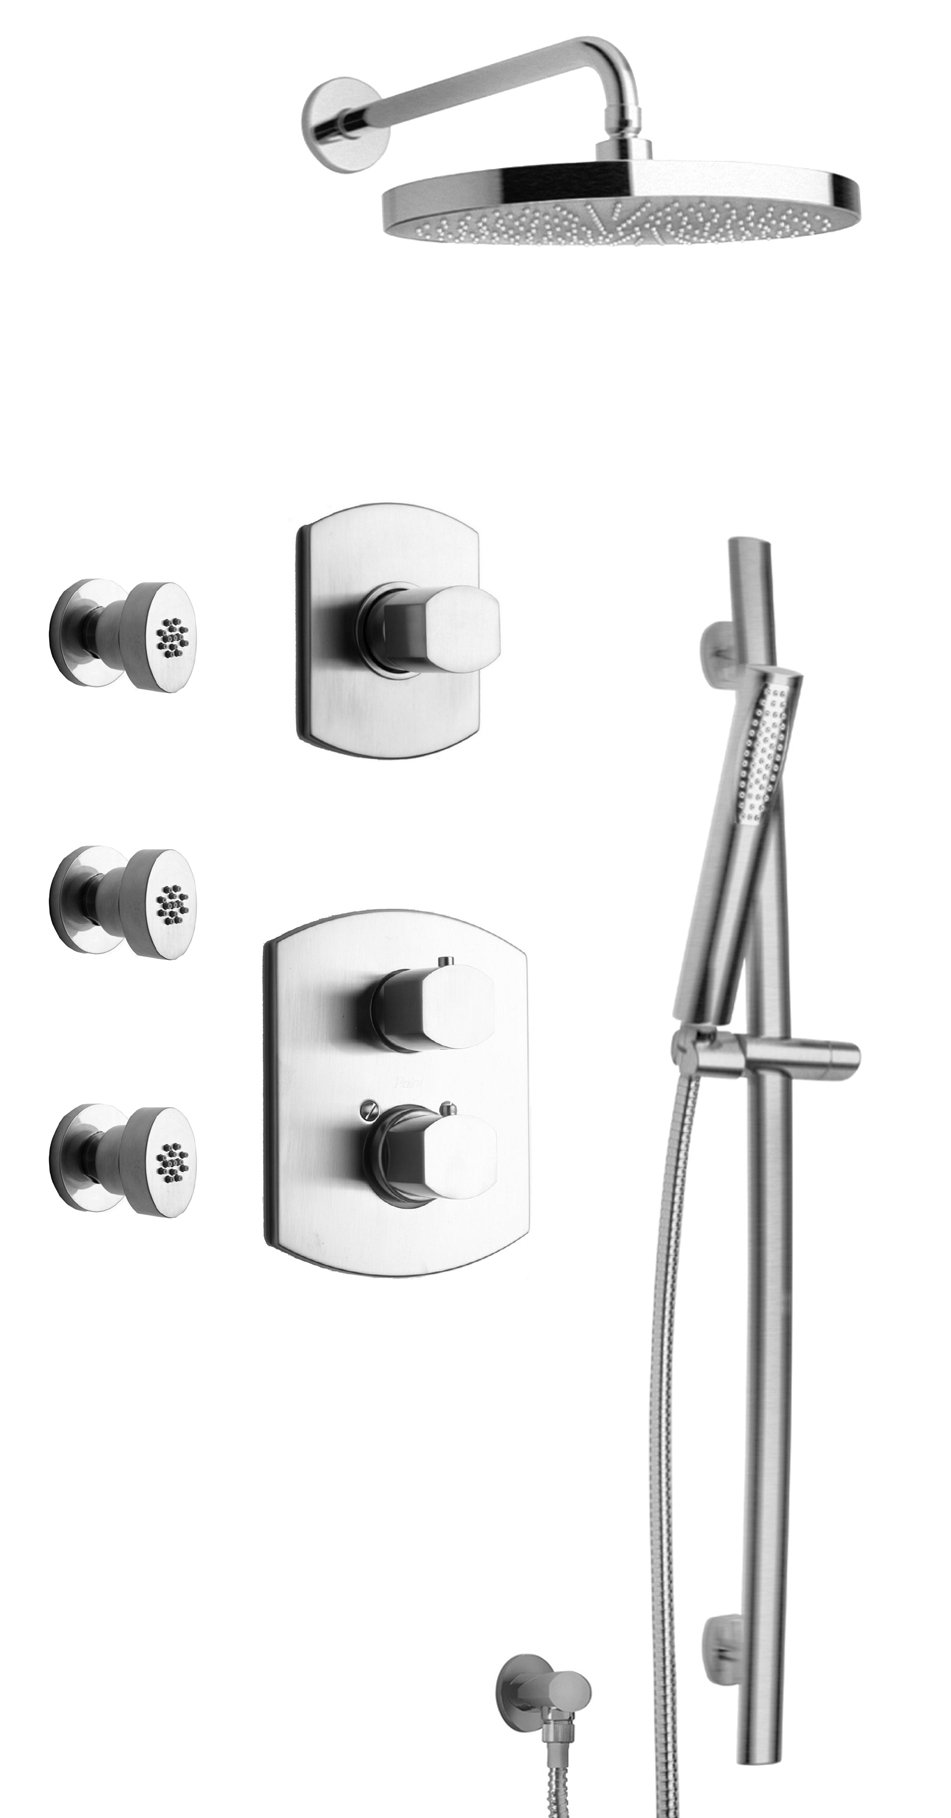 """Thermostatic Shower With 3/4"""" Ceramic Disc Volume Control, 3-Way Diverter, Slide Bar and 3 Body Jets - Chrome Finish"""